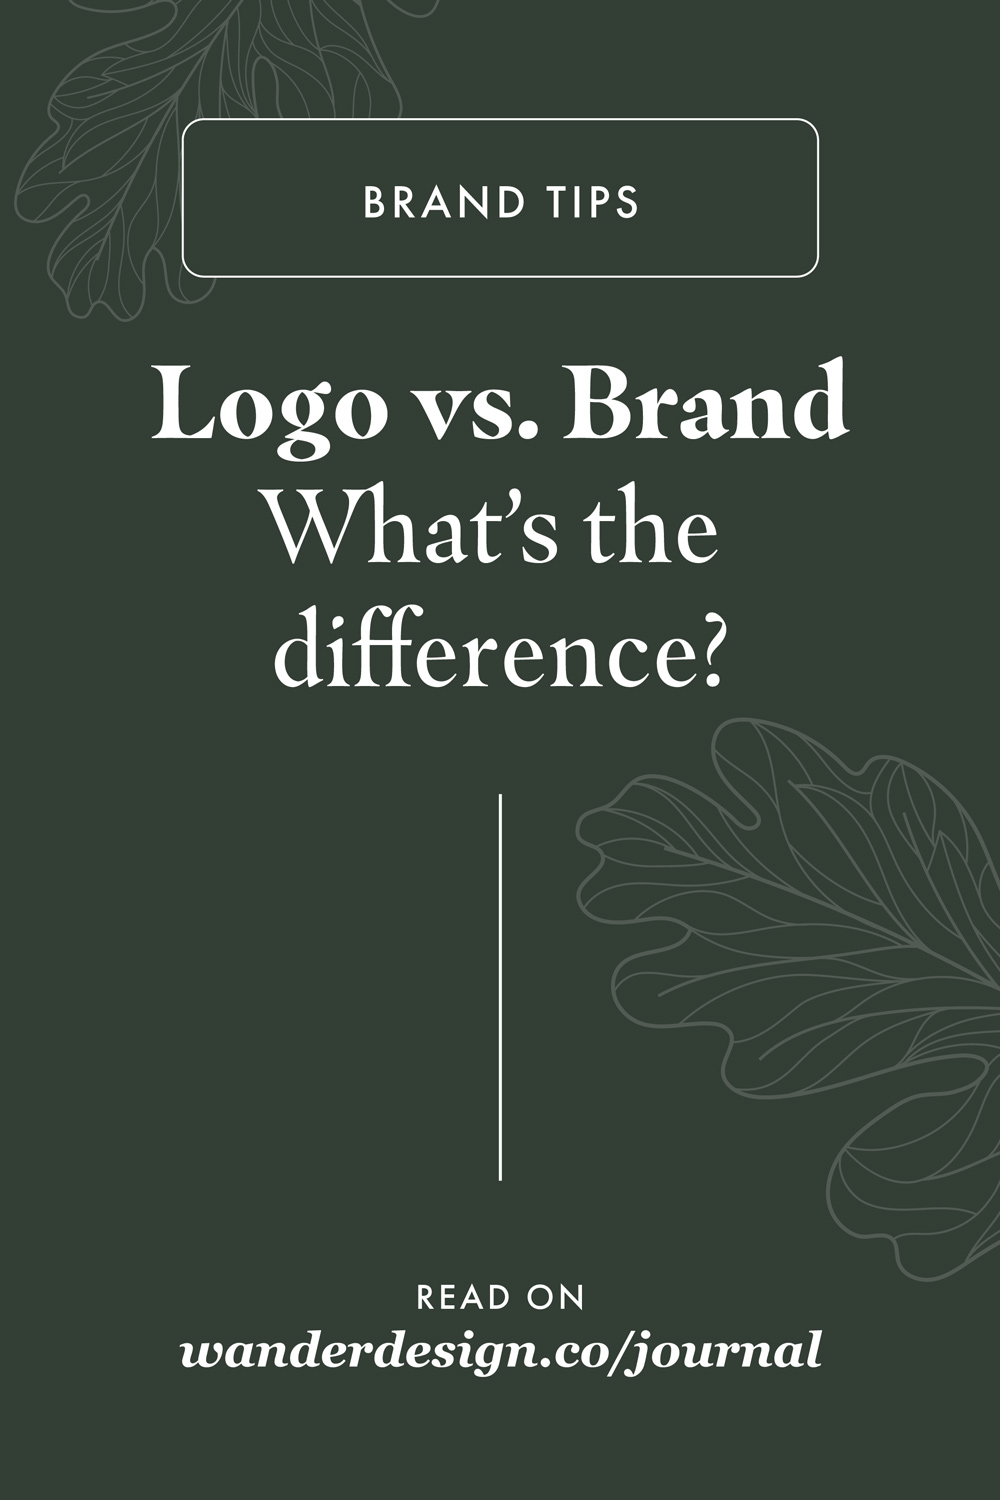 Logo vs. Brand: What's the Difference?